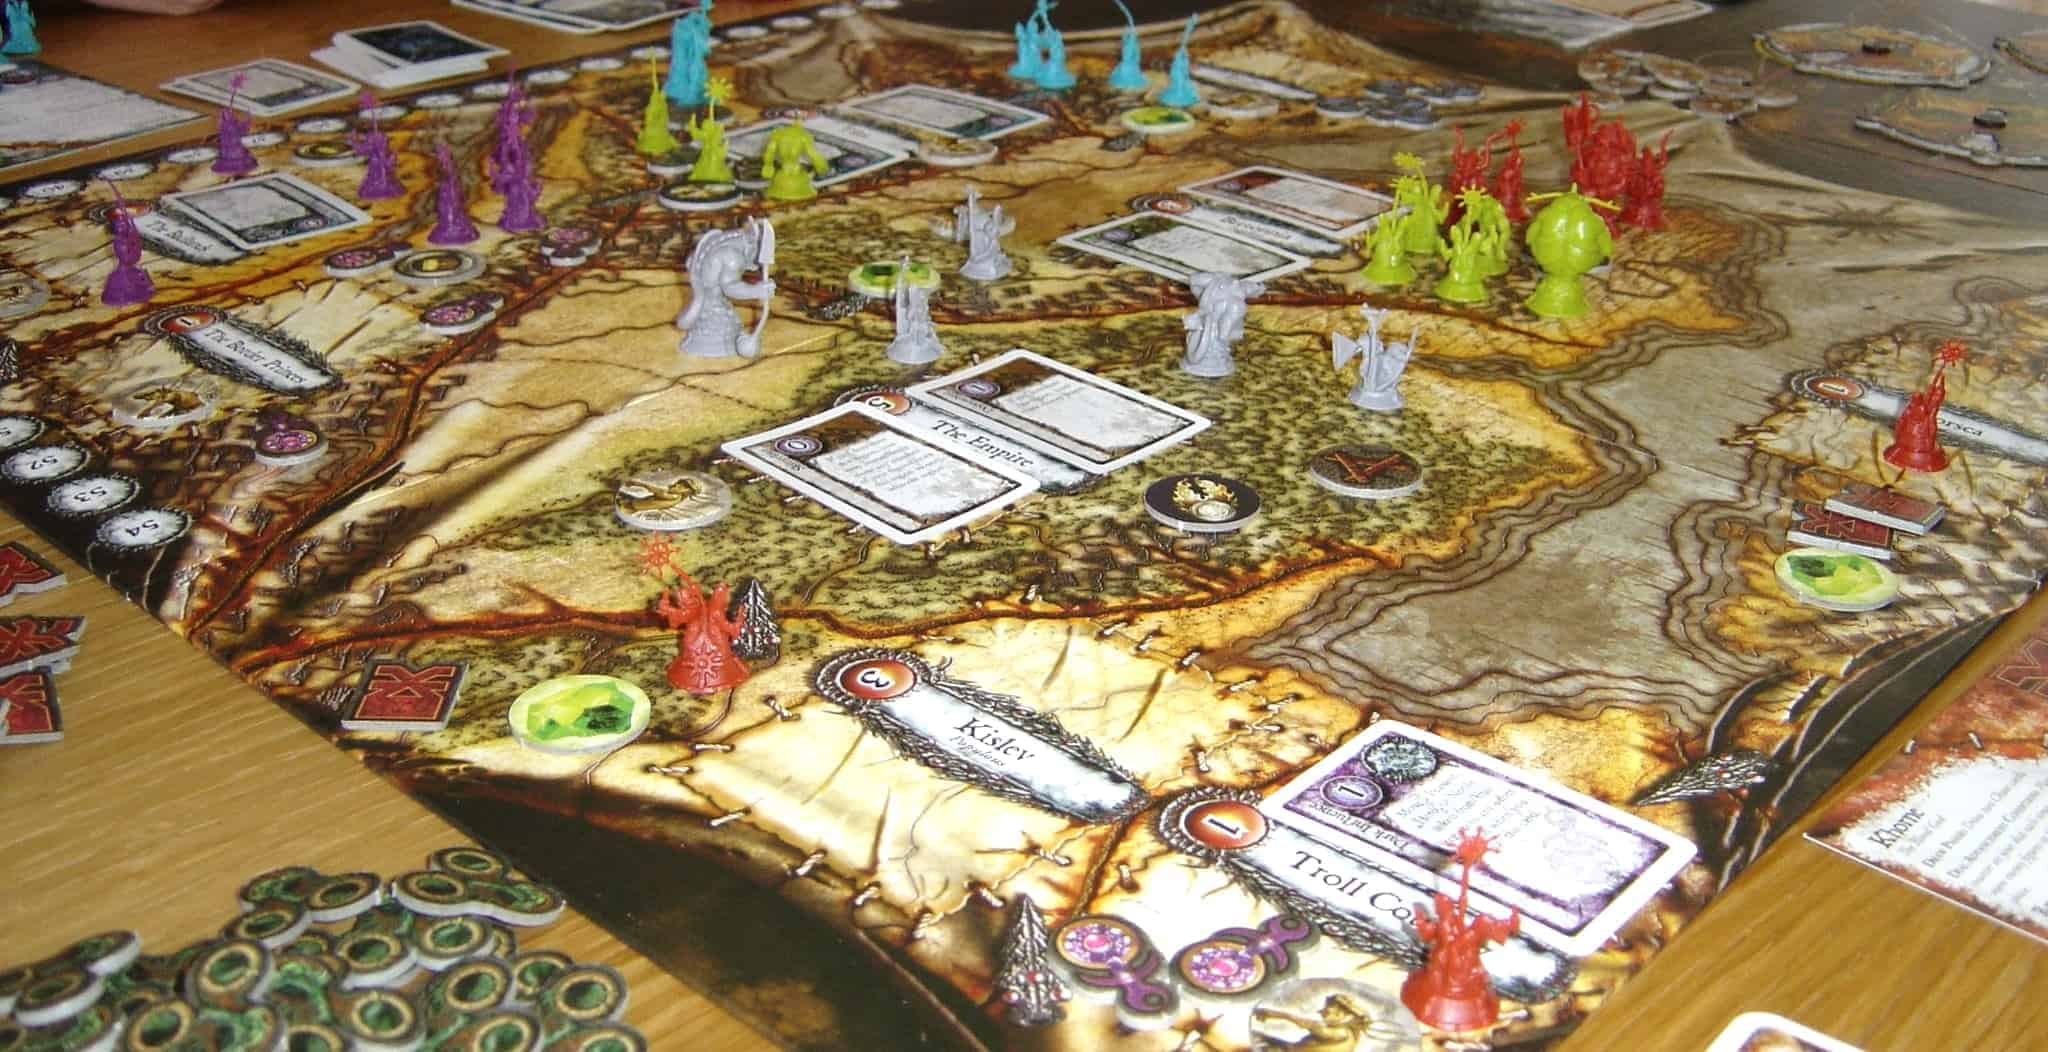 If you like Warhammer fantasy board games then Chaos in the Old World is engaging, thematic and simply enjoyable to play!